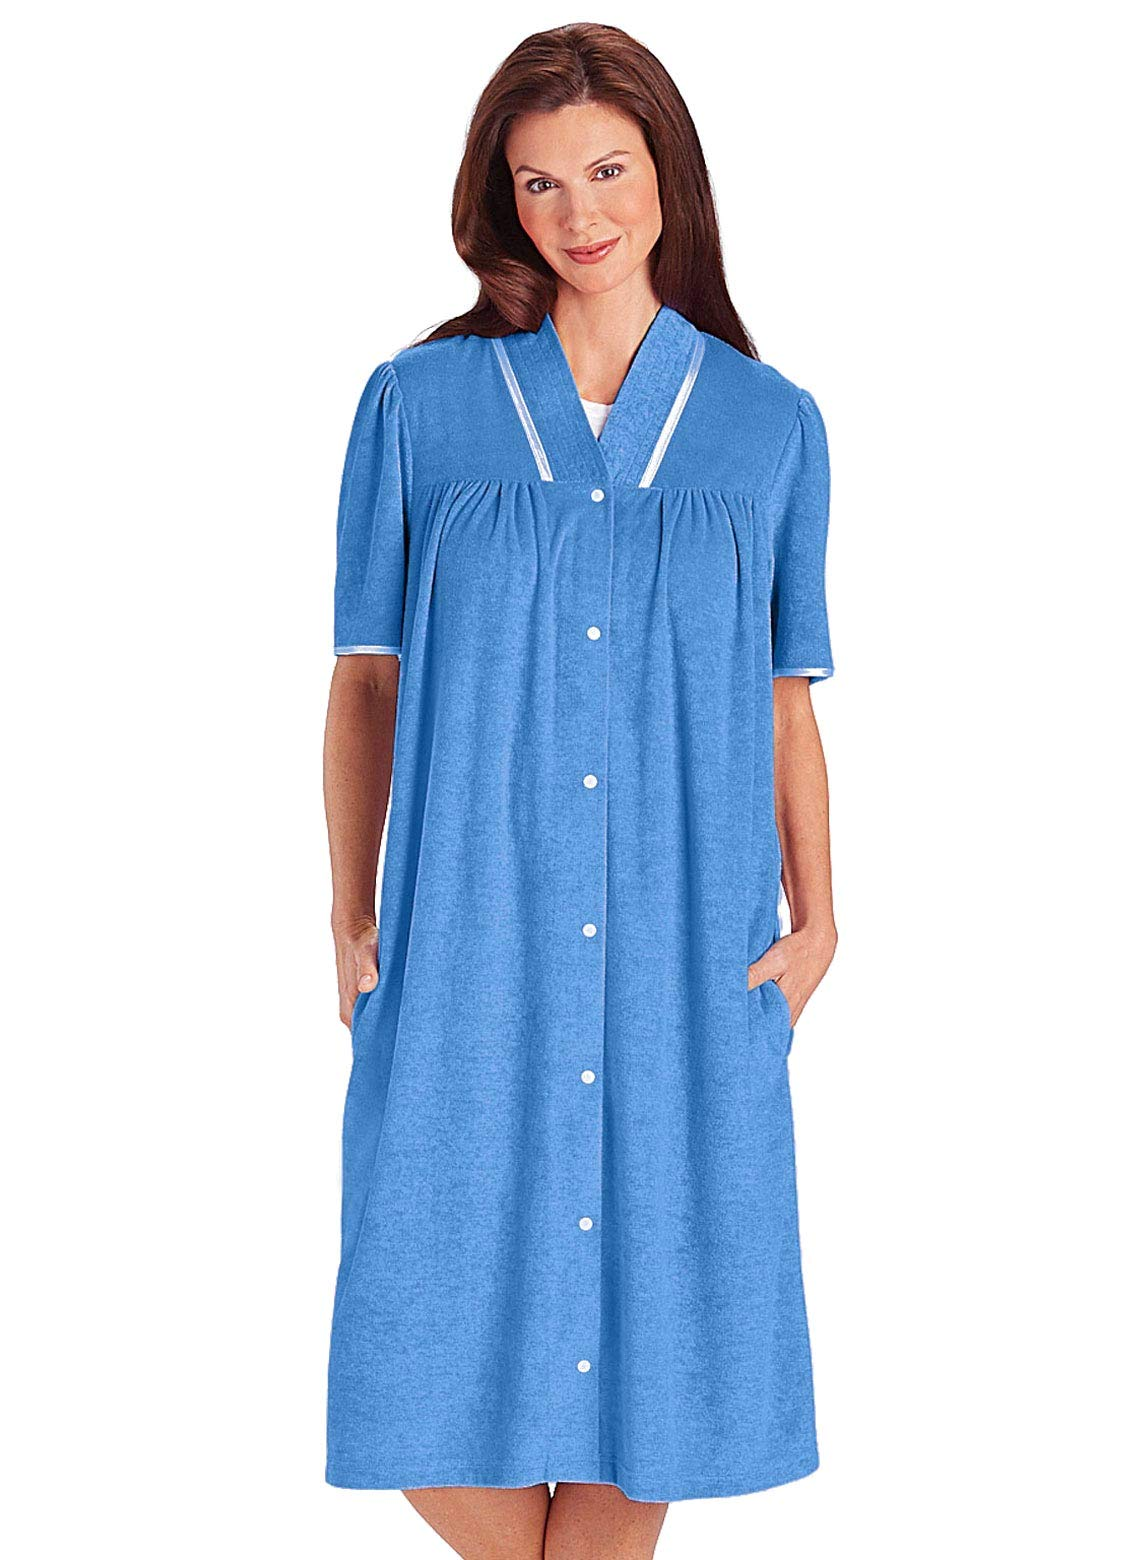 Carol Wright Gifts Terry Snap Robe, Blue, Size Extra Large (2X)